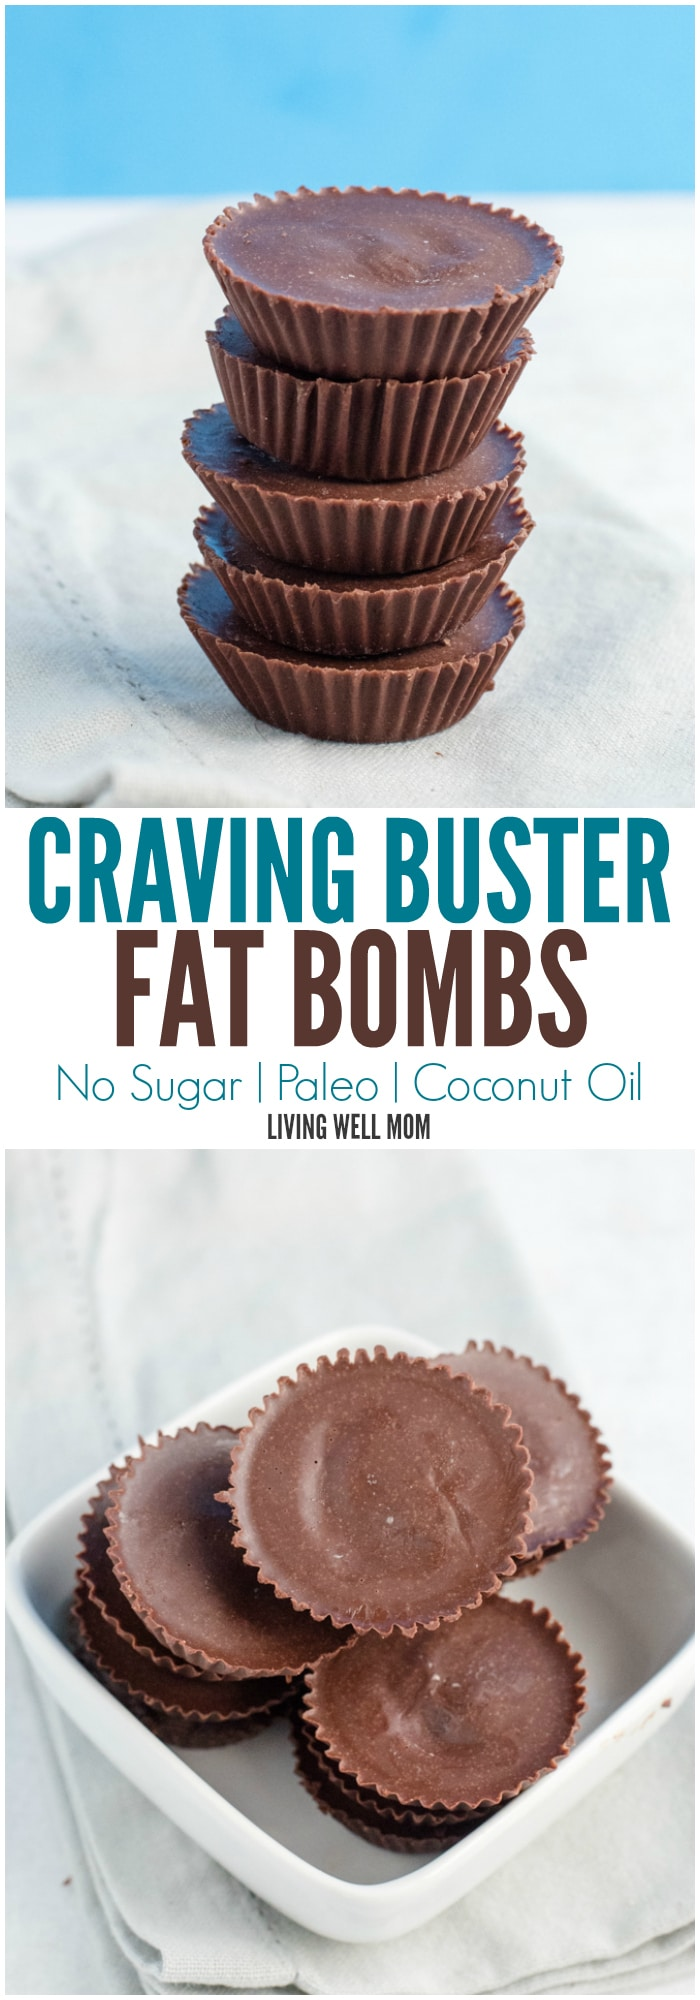 paleo keto chocolate fat bombs recipe